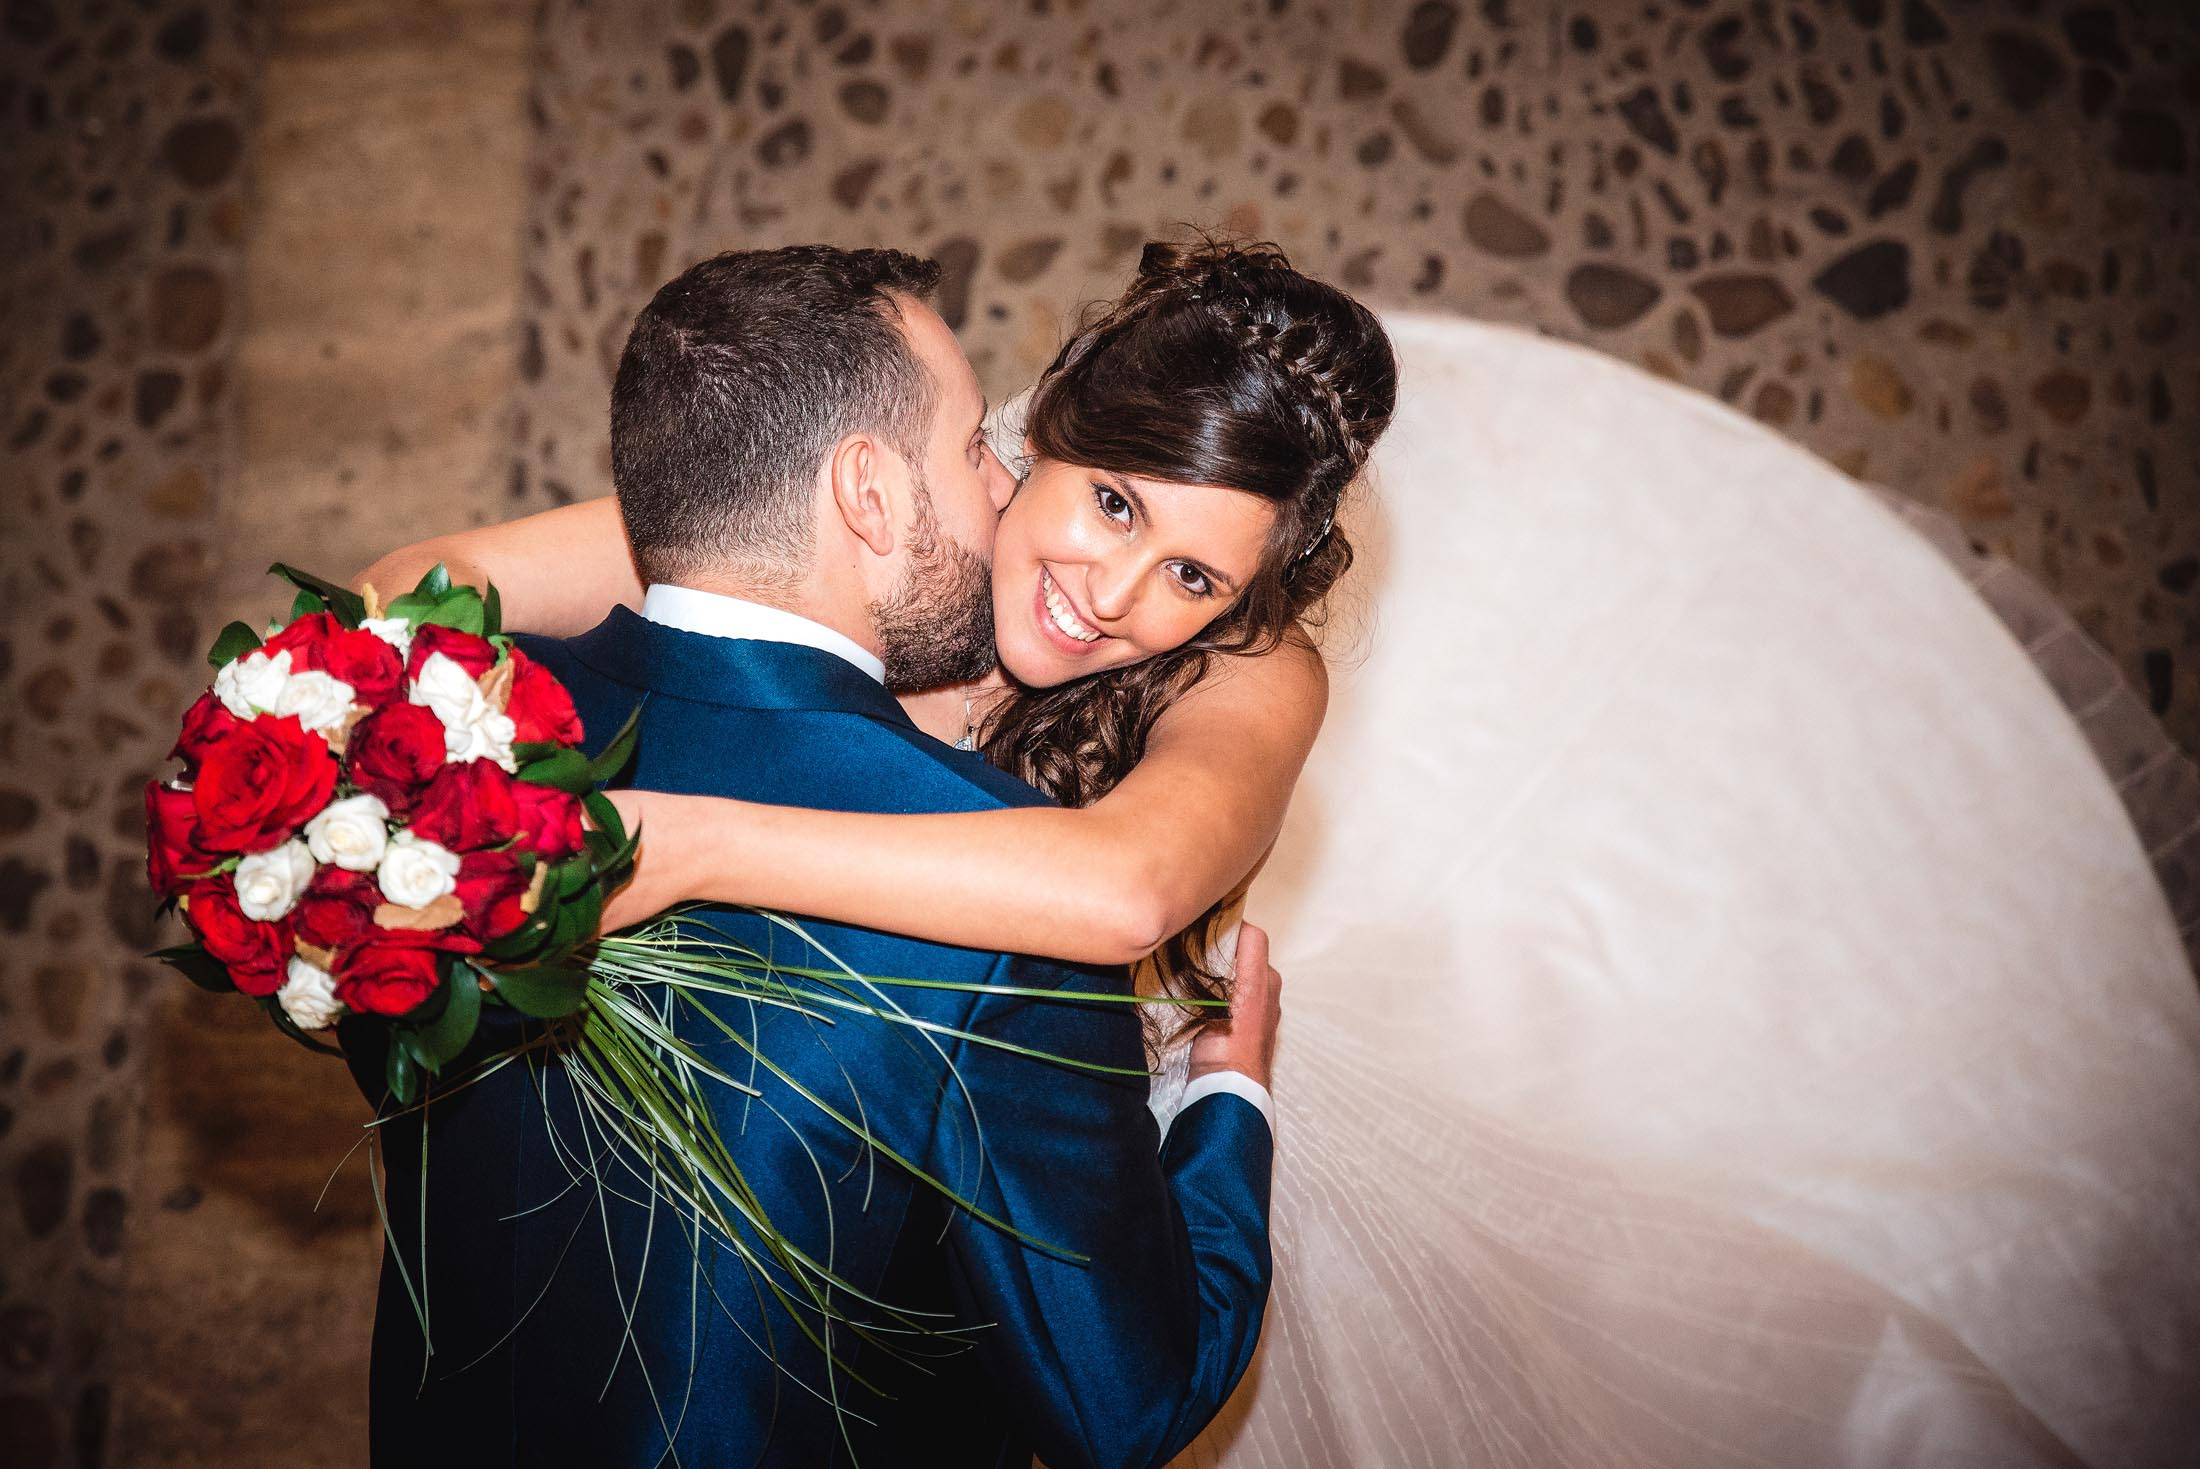 Boda de Antonio y Maite - Membrilla-0484-Edit